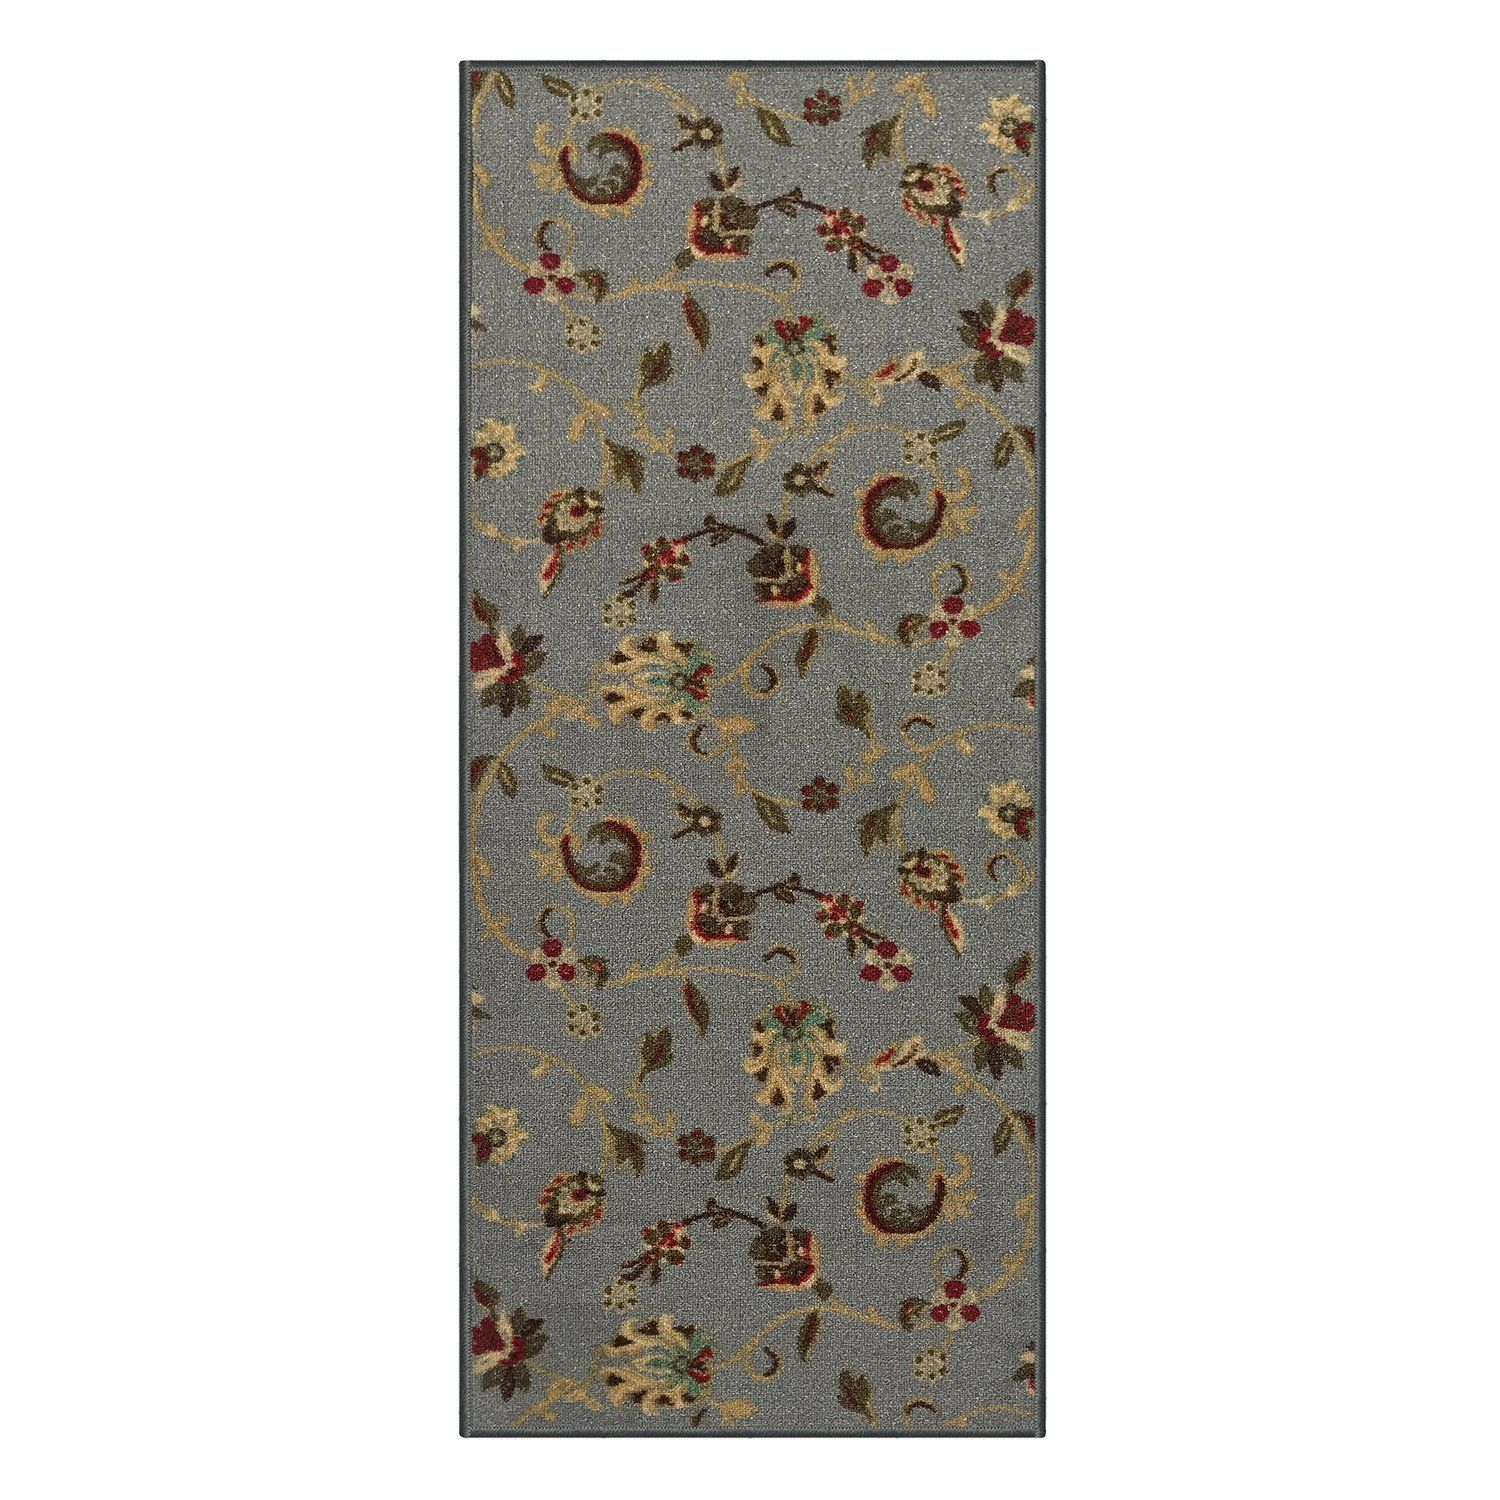 Best Custom Size Grey Floral Rubber Backed Non Slip Hallway Stair Runner Rug Carpet 31 Inch Wide 640 x 480